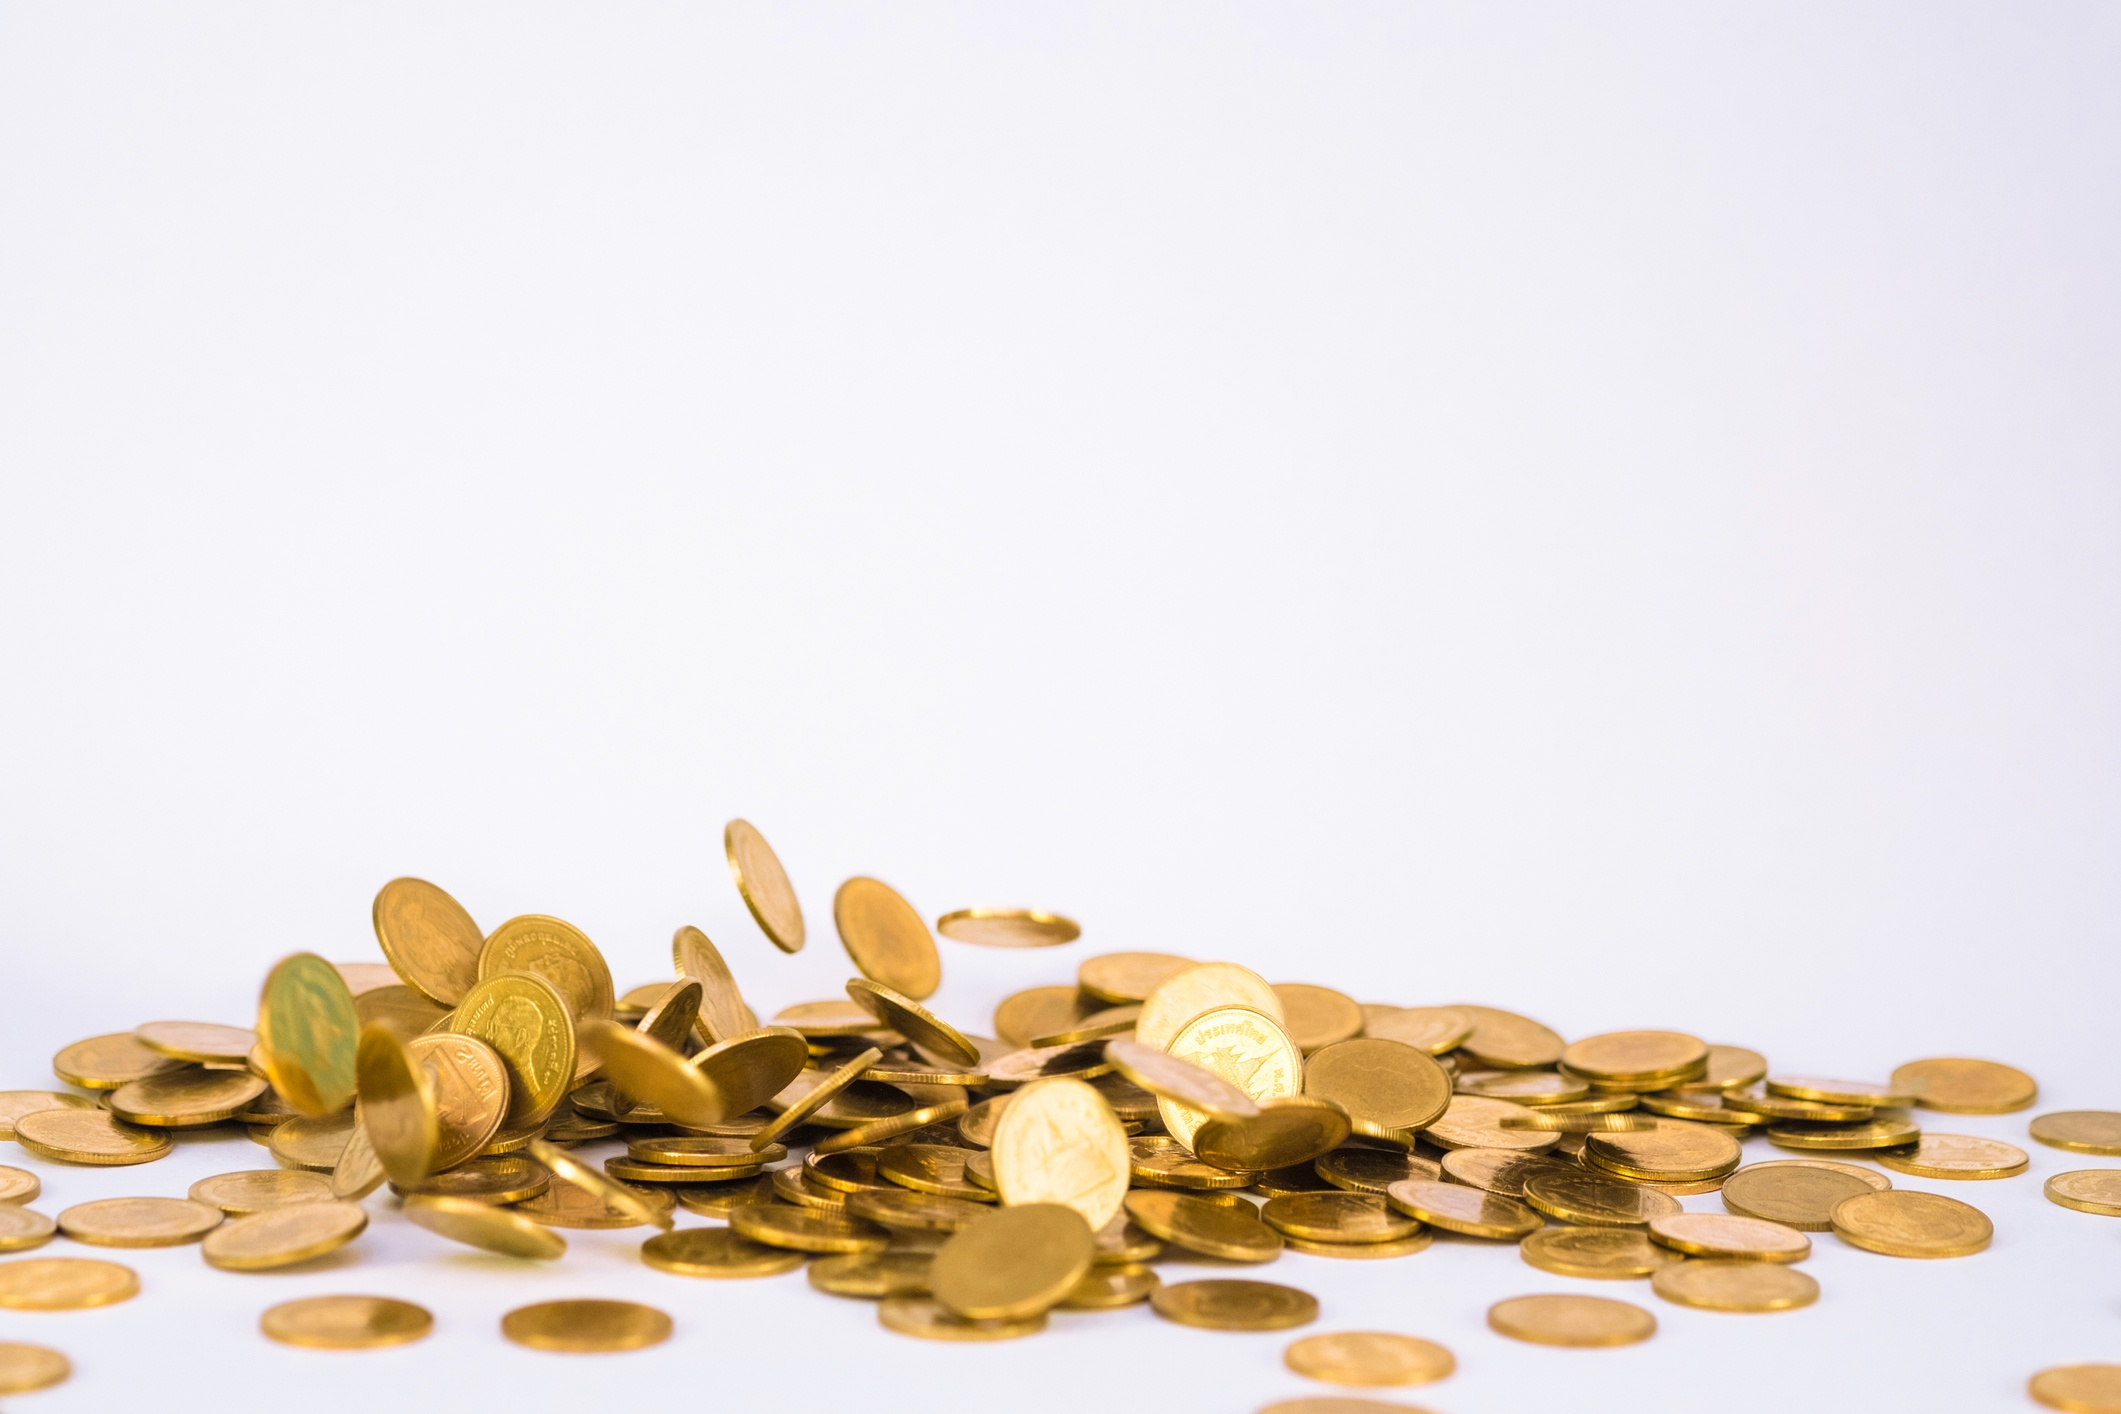 gold coins scattering